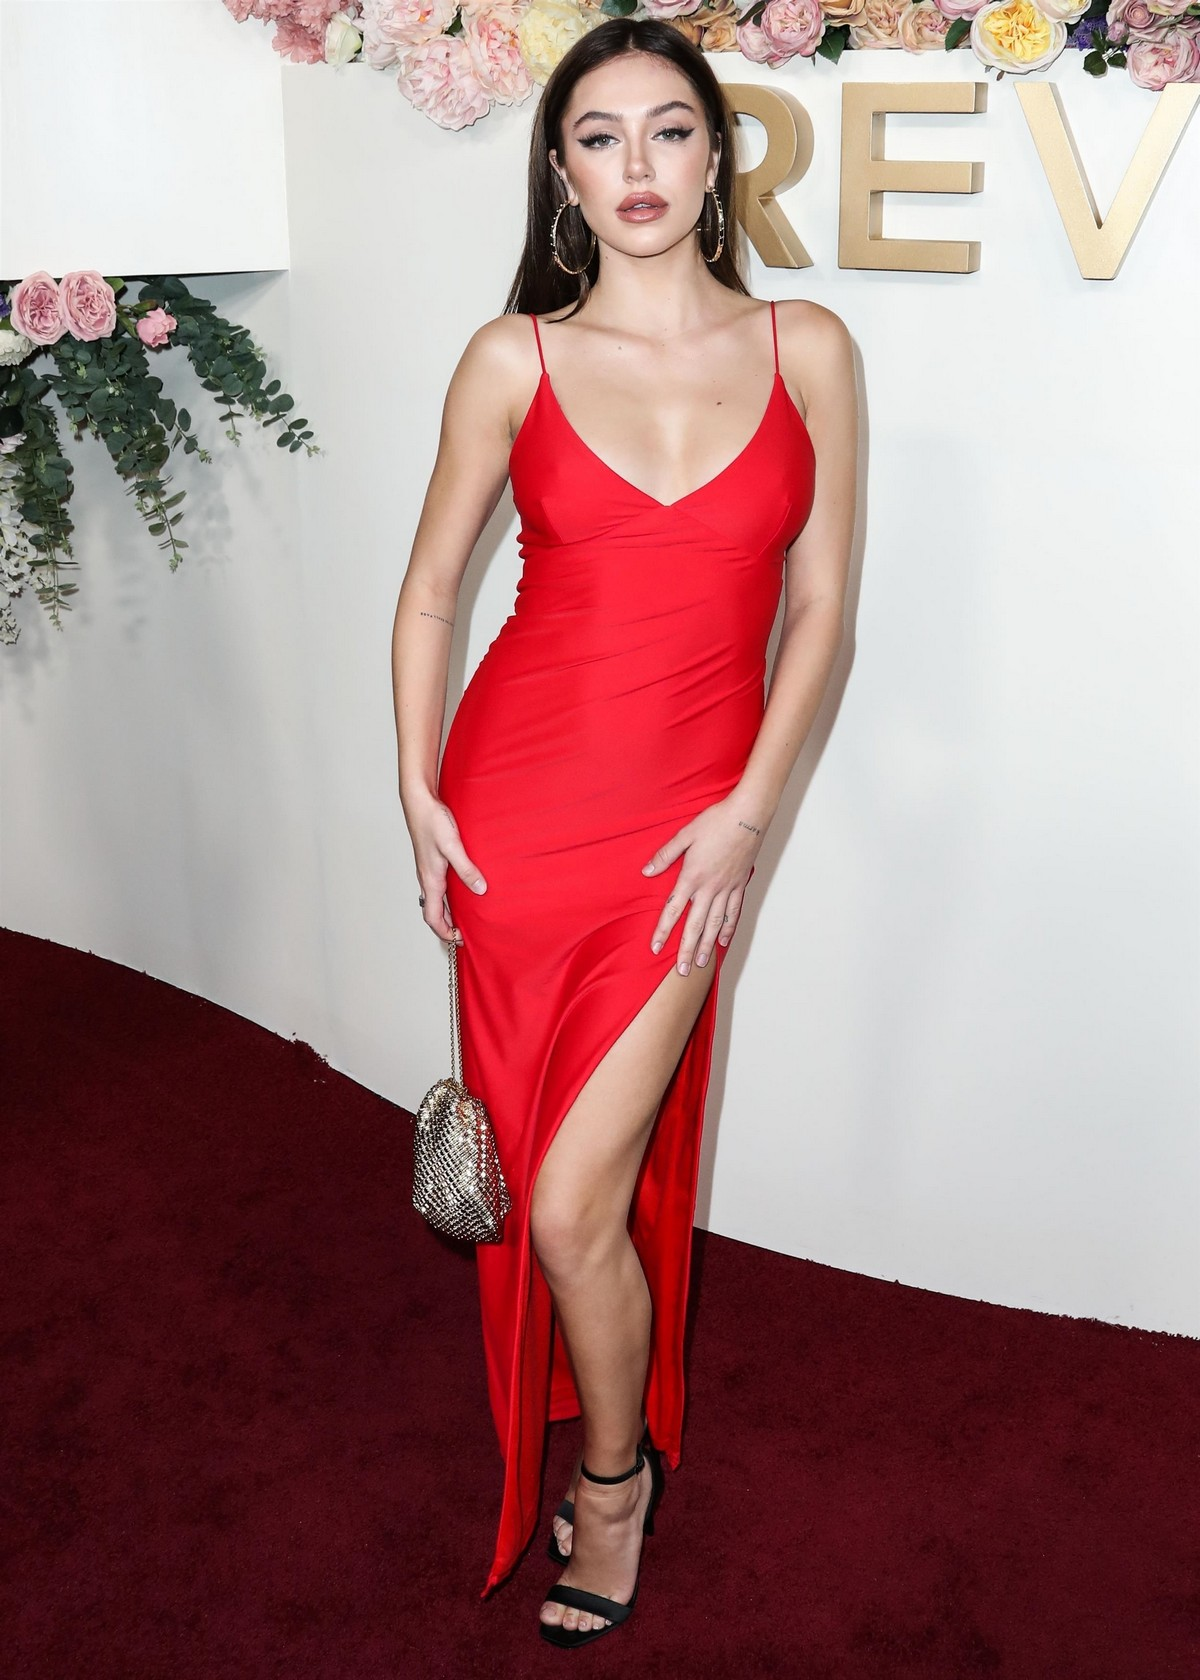 Delilah Belle Hamlin seen in Red Stylish Dress at 3rd Annual #REVOLVE Awards 2019 in Los Angeles 2019/11/15 14